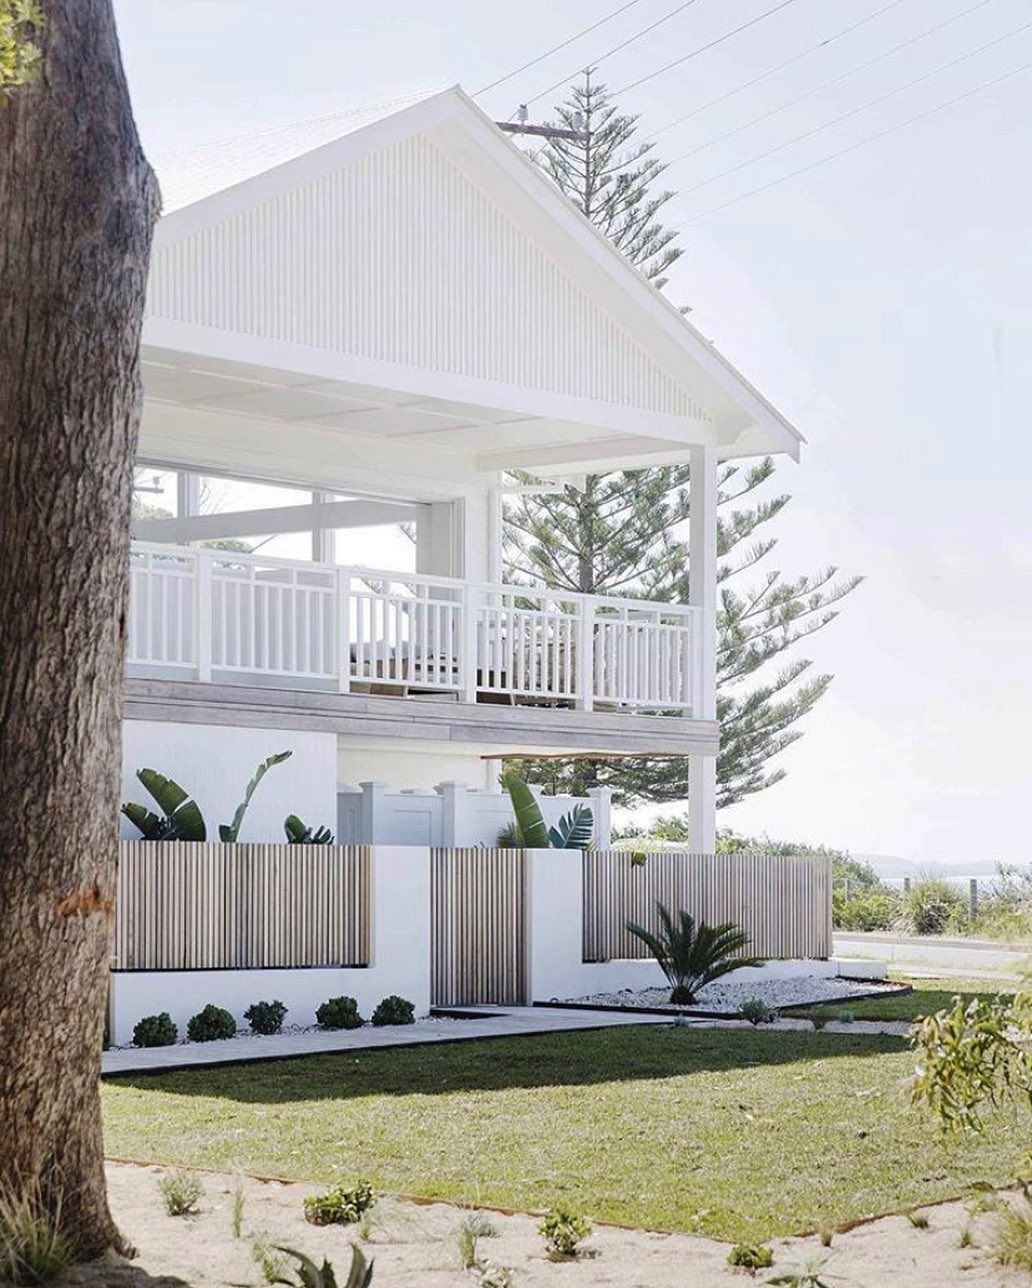 Palm Beach Collection On Instagram The Modern Beachhouse That Embodies Everything Australian Coa In 2020 Beach House Exterior Beach House Interior Modern Beach House